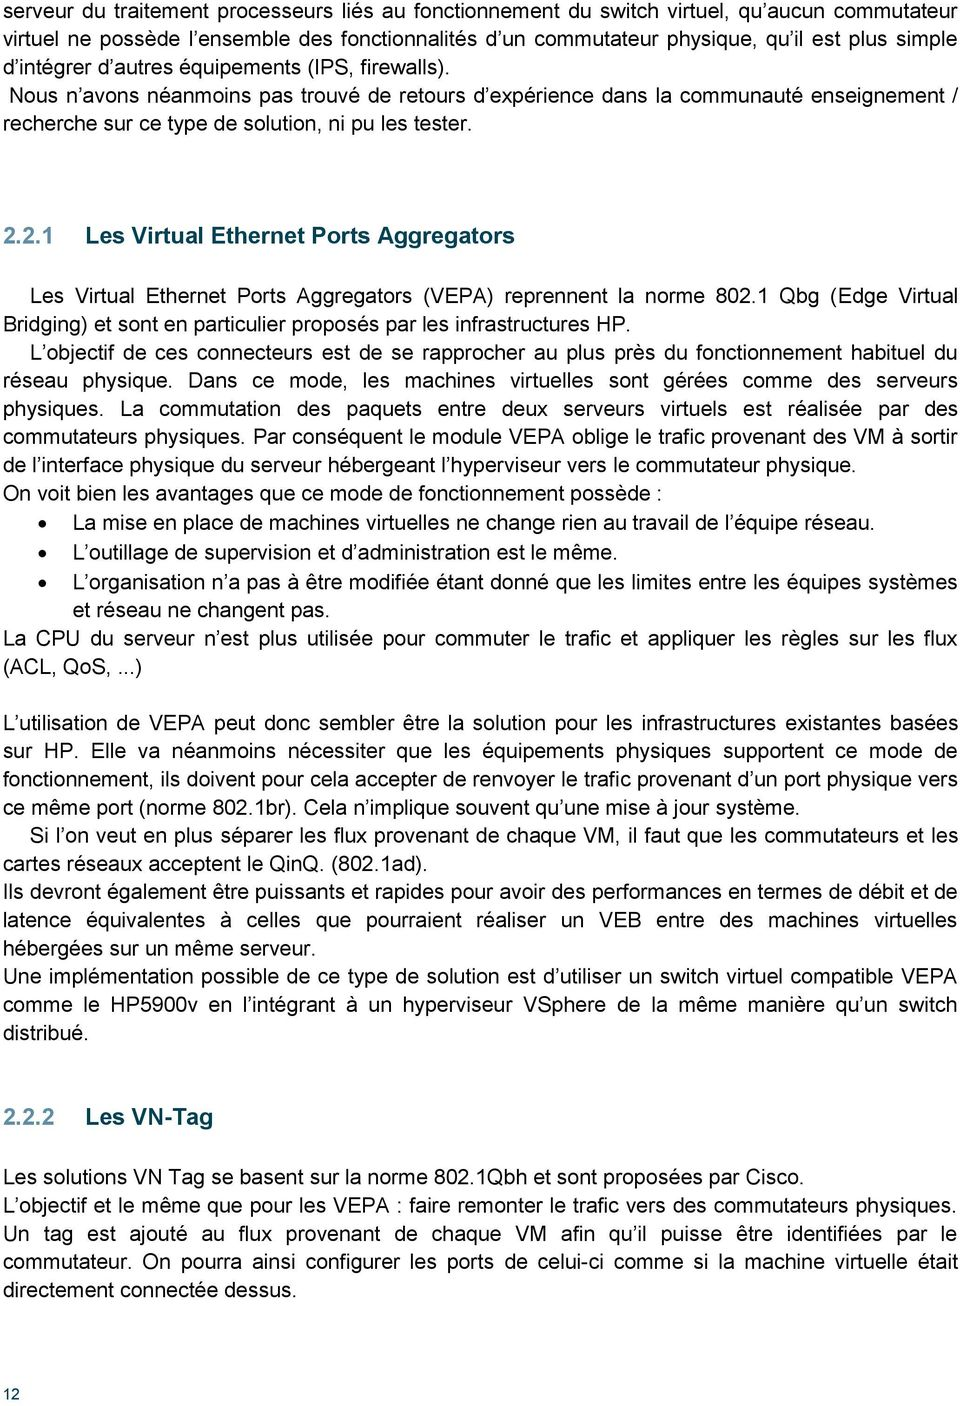 2.1 Les Virtual Ethernet Ports Aggregators Les Virtual Ethernet Ports Aggregators (VEPA) reprennent la norme 802.